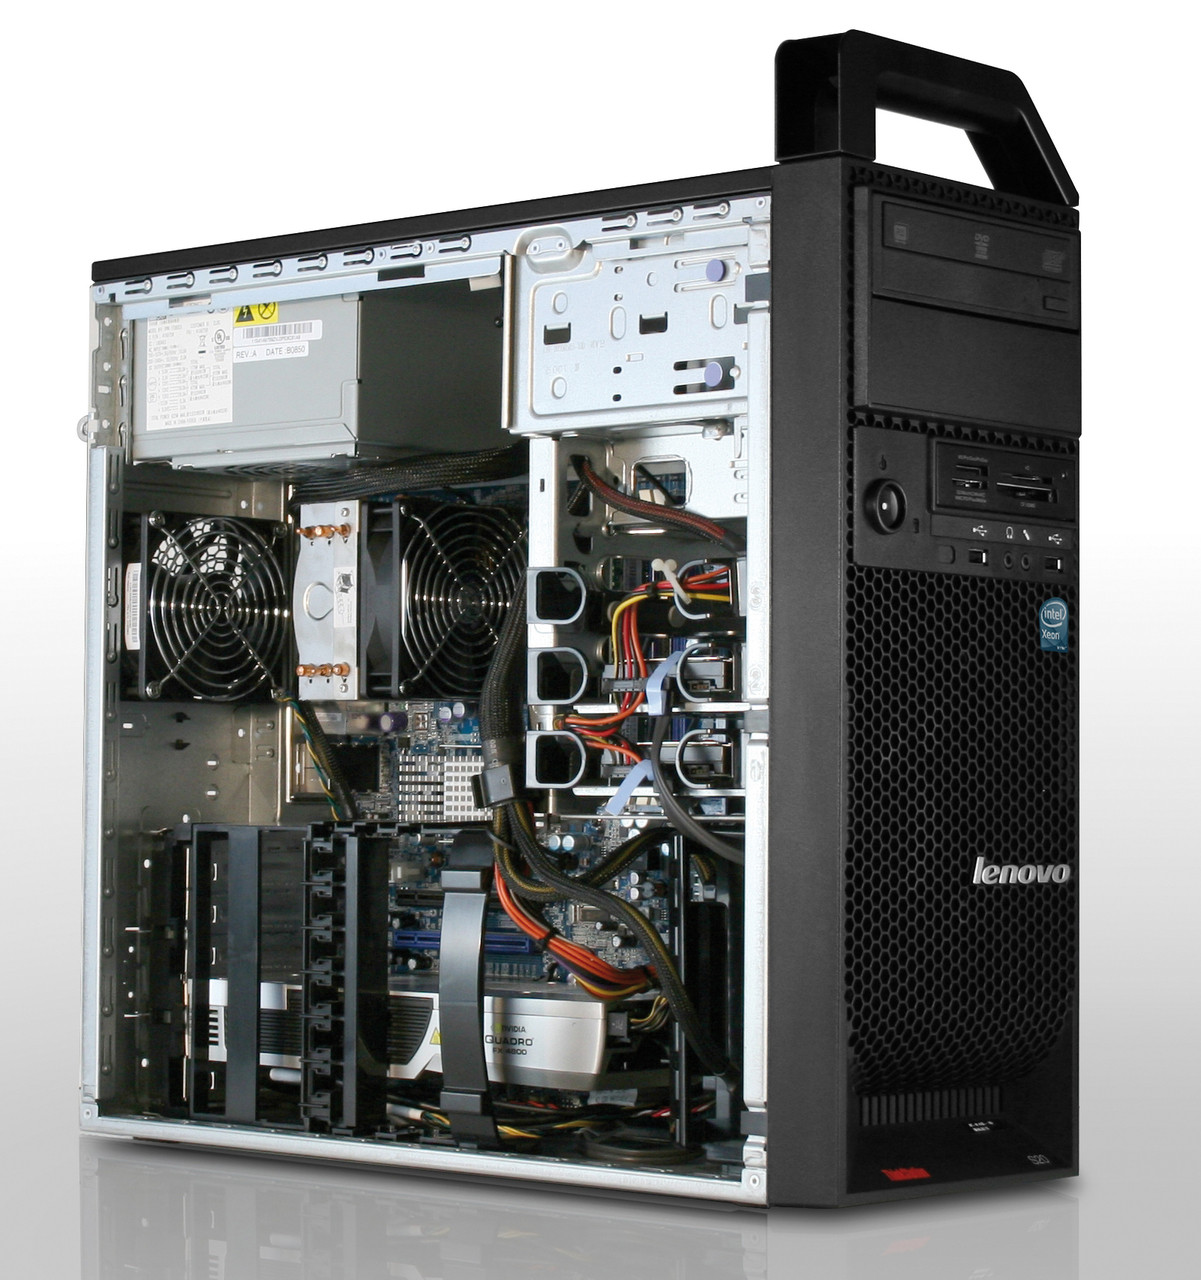 Lenovo ThinkCentre s20 - inside view